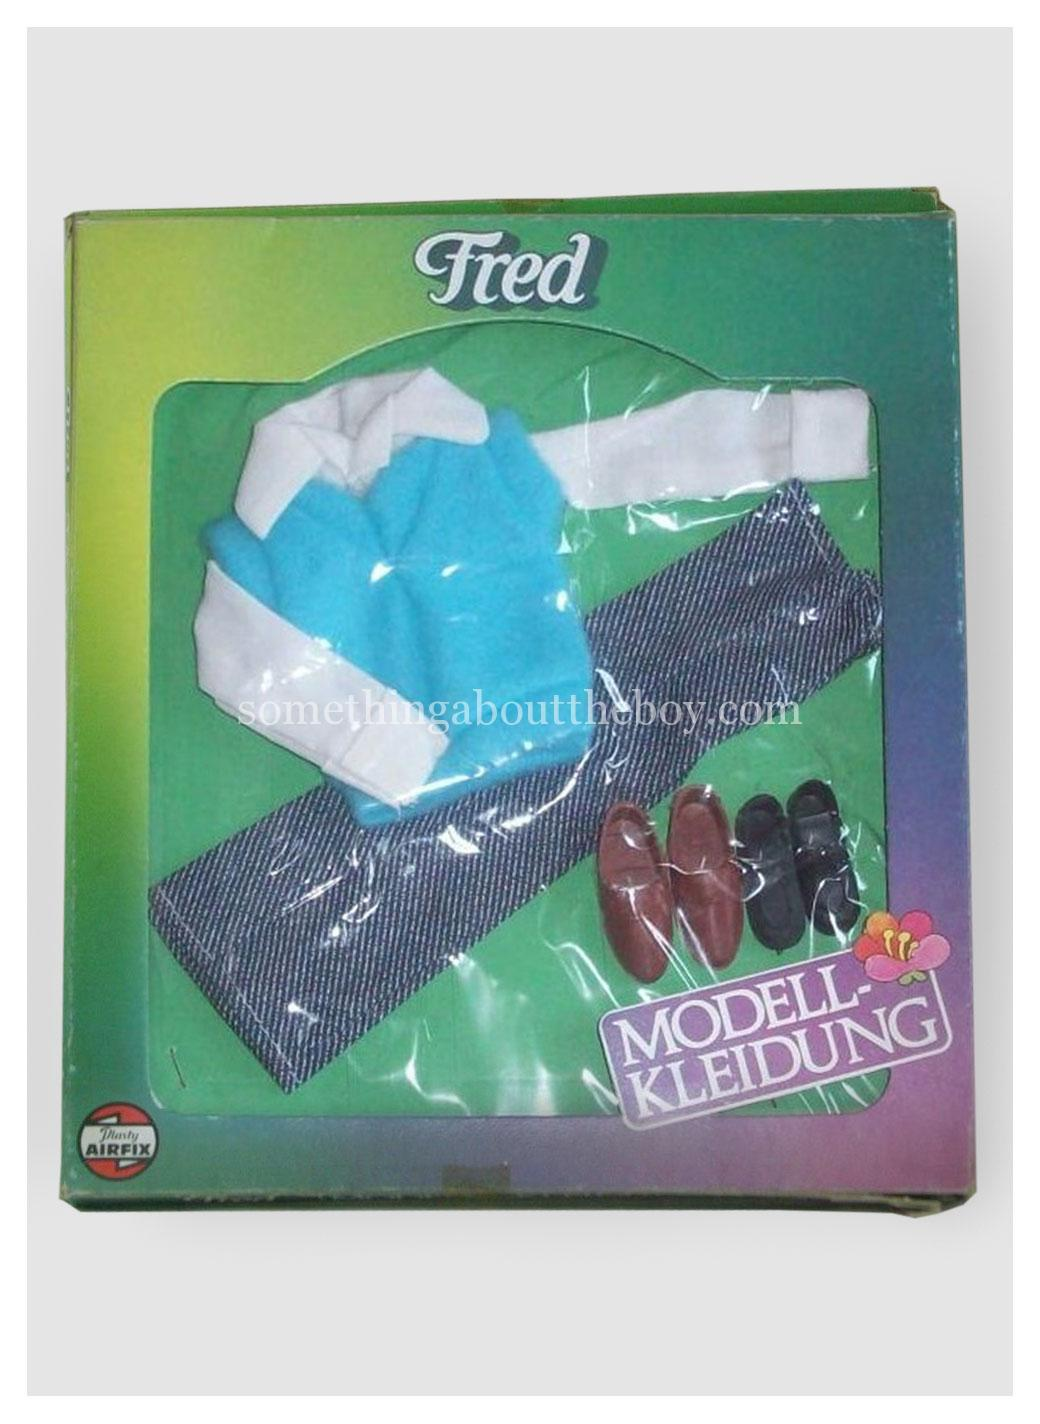 1977 Fred by Plasty/Airfix Modellkleidung #5873